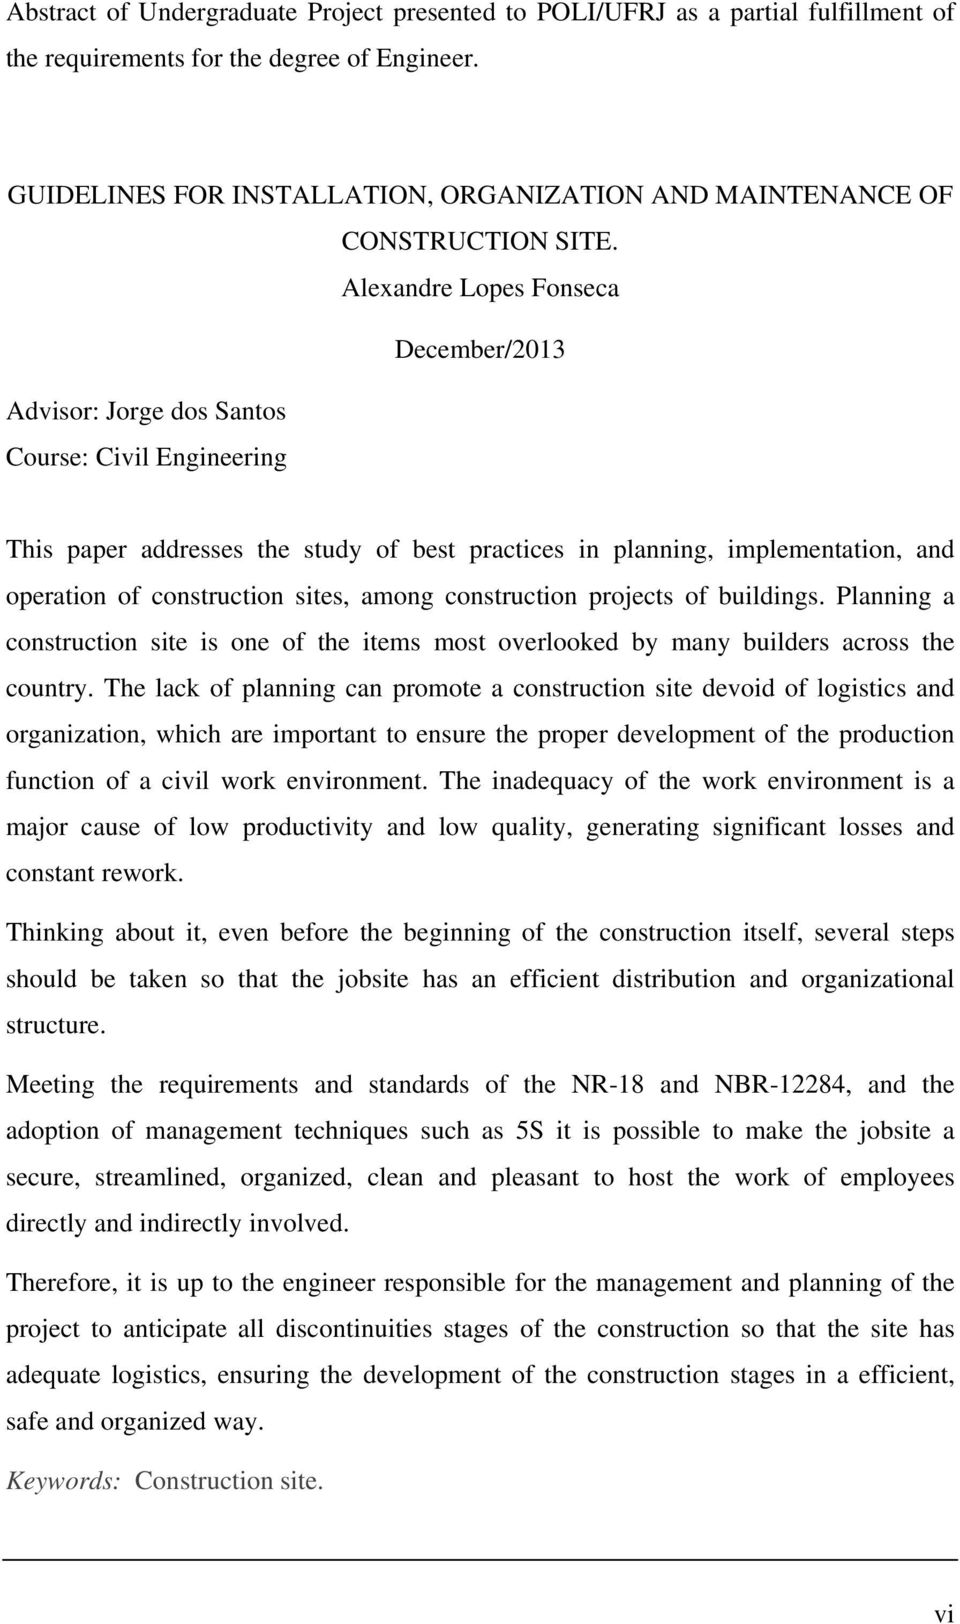 Alexandre Lopes Fonseca December/2013 Advisor: Jorge dos Santos Course: Civil Engineering This paper addresses the study of best practices in planning, implementation, and operation of construction